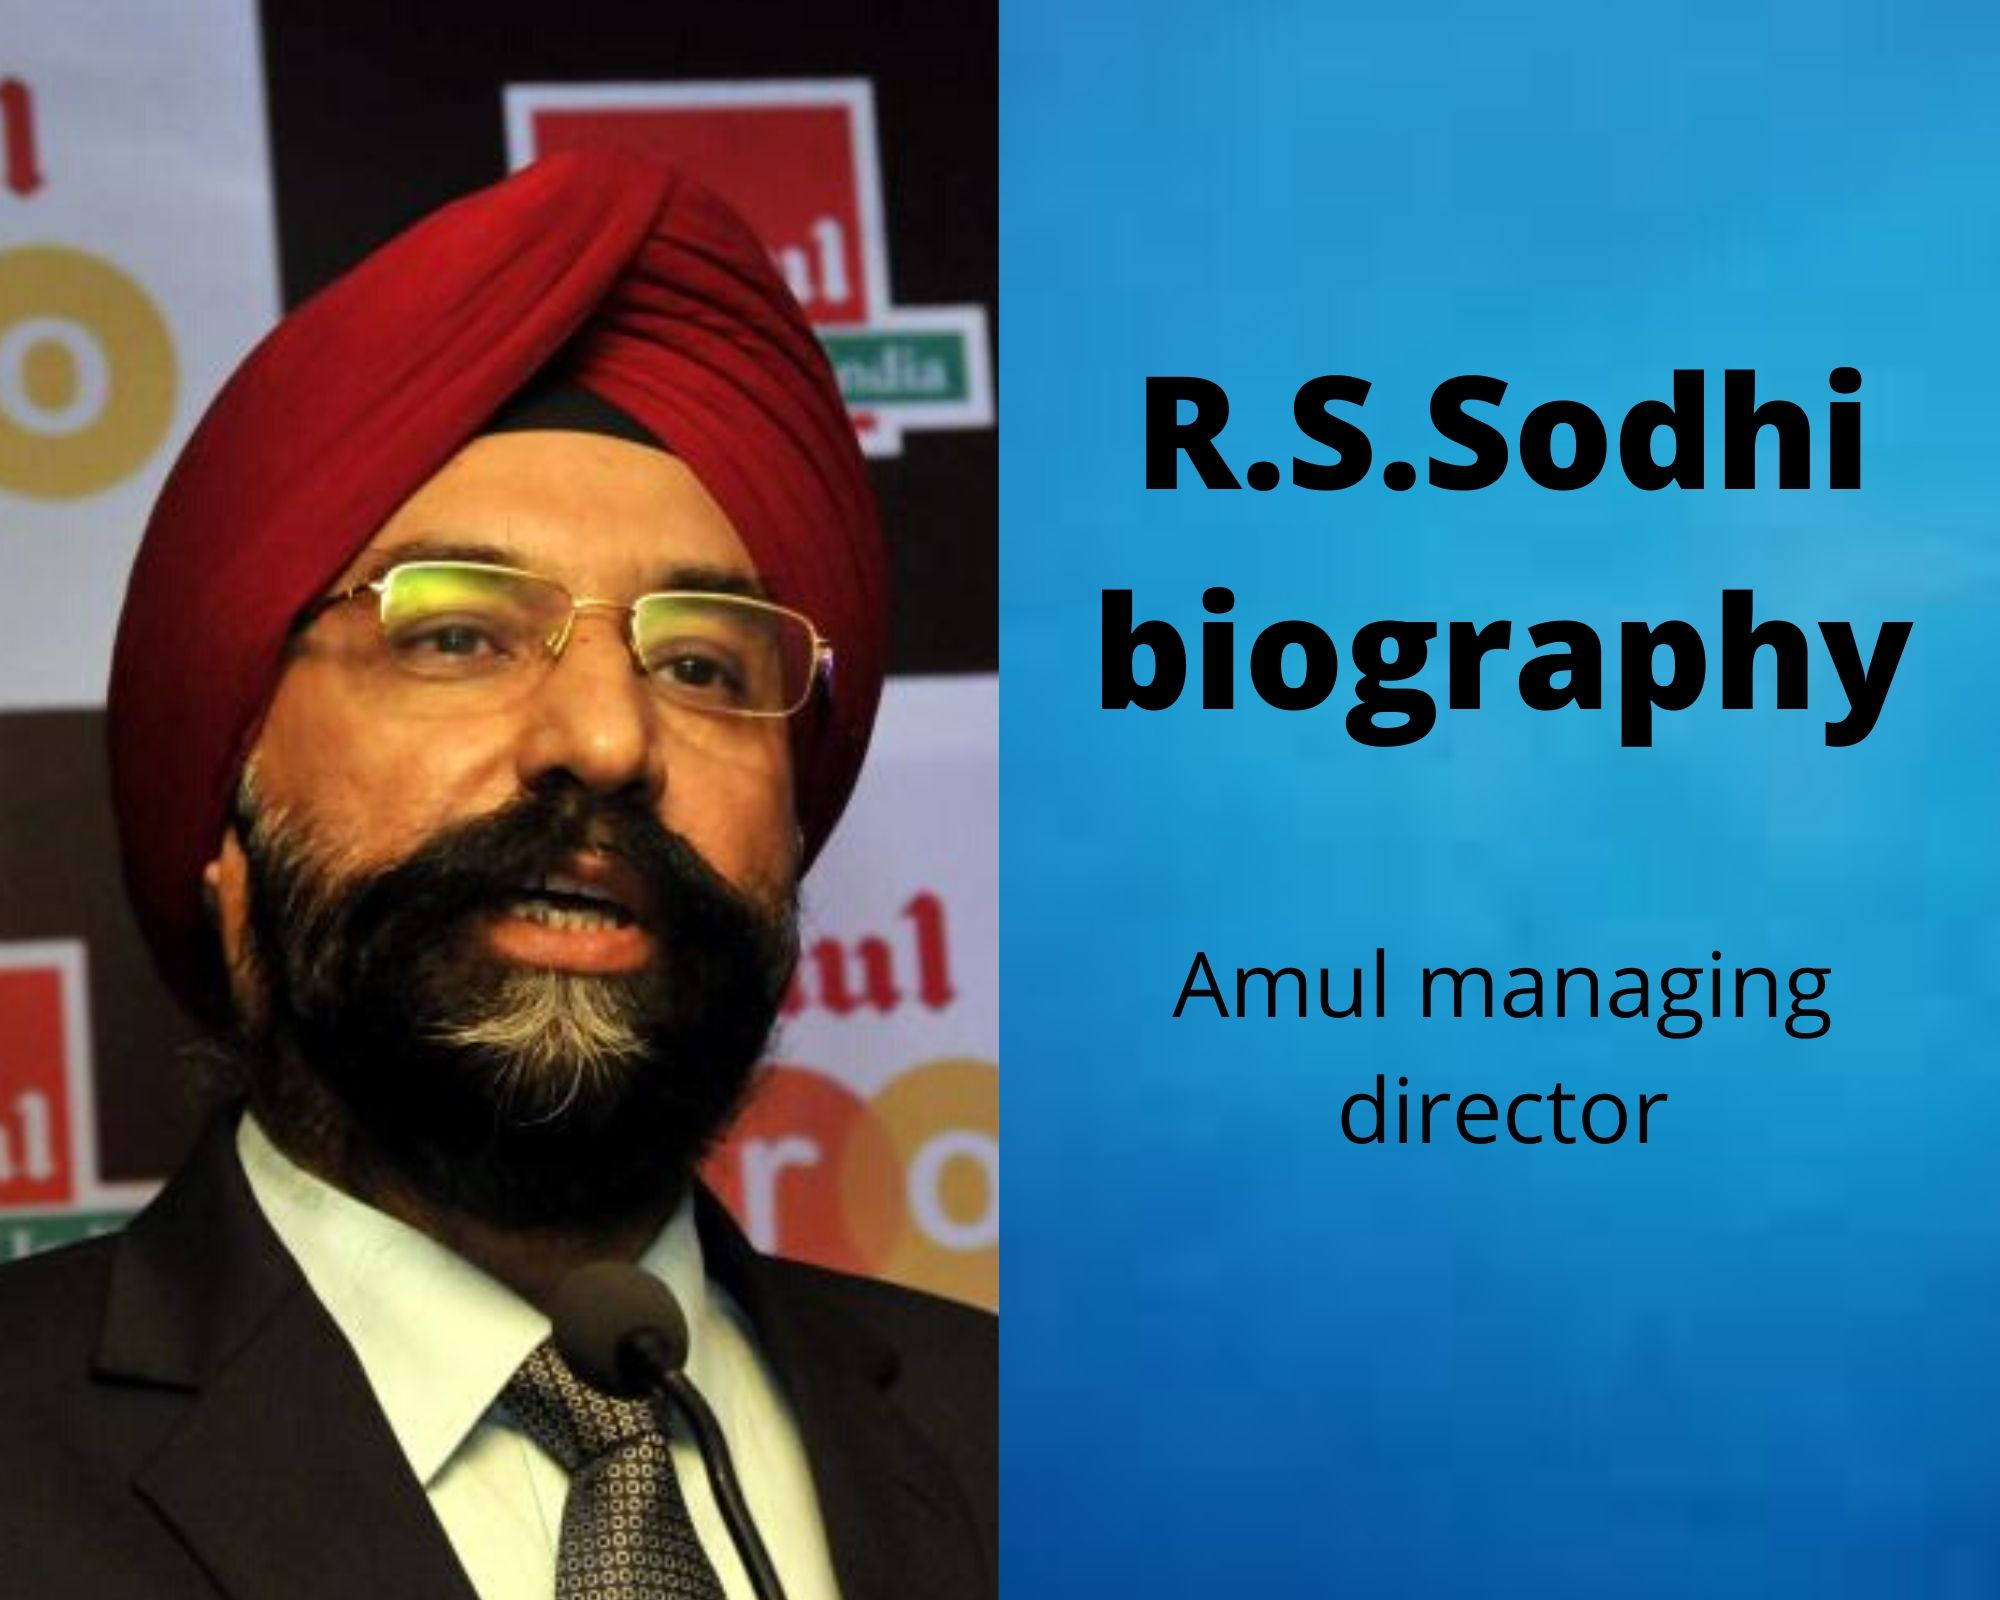 R.S.Sodhi biography